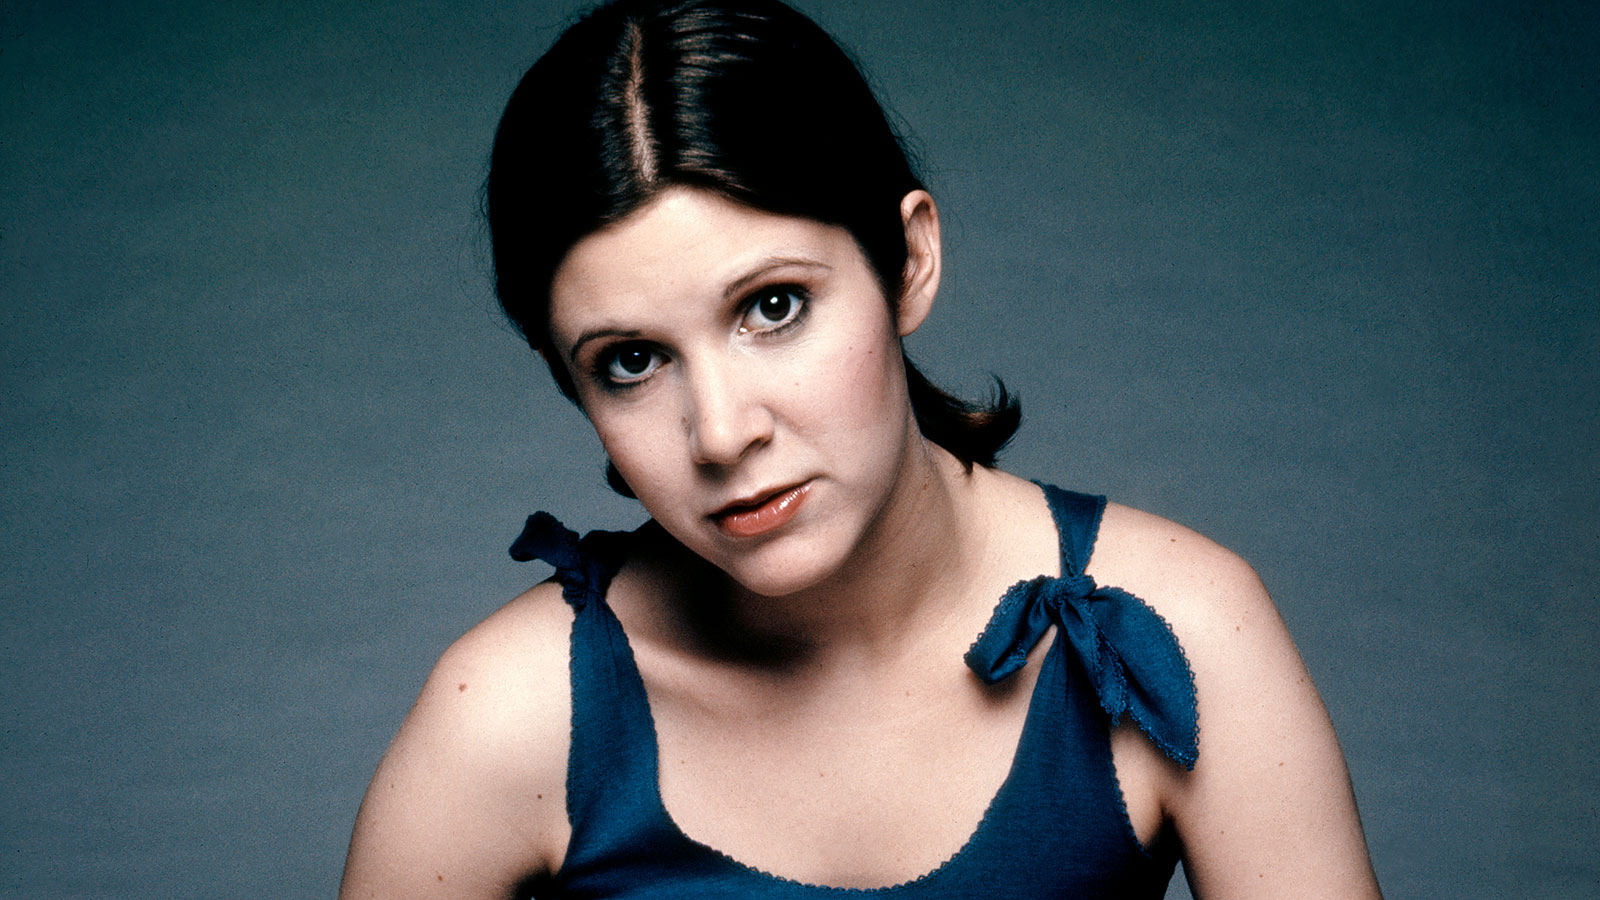 Tits Pics Carrie Fisher naked photo 2017